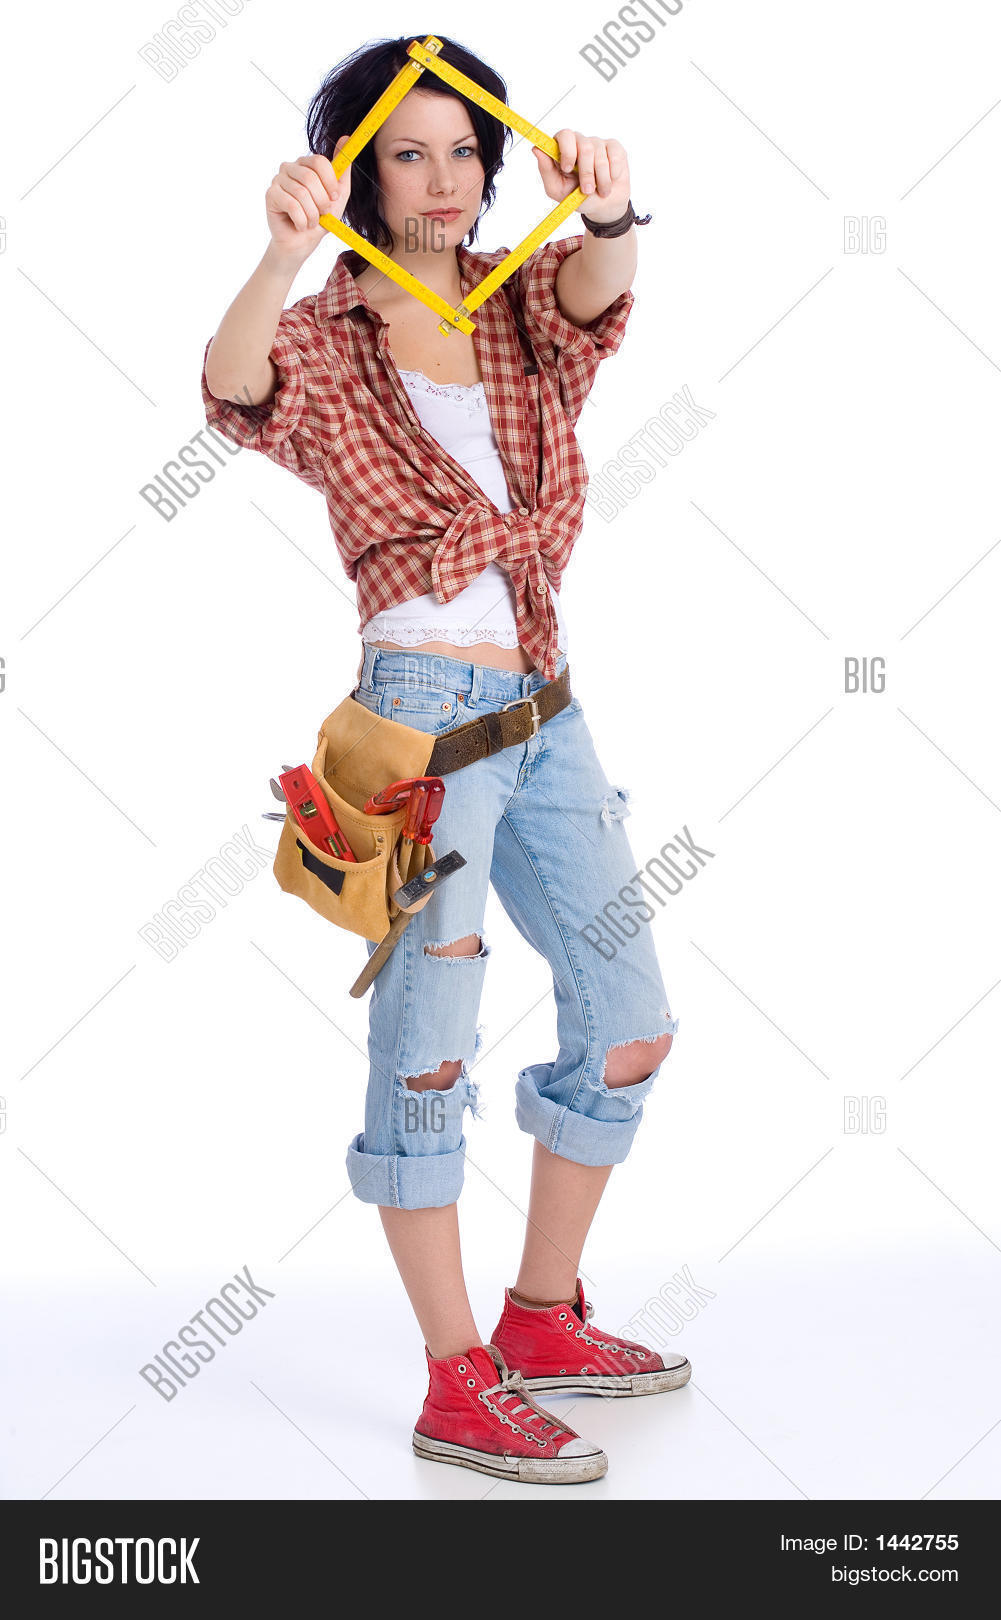 18-21,adult,at,attractive,belt,building,carpenter,carpentry,caucasian,class,construction,craftsmanship,denim,do-it-yourself,do-it-yourselfer,engineer,engineering,fixing,fun,girl,gorgeous,handygirl,handyman,handywoman,hard,home,homemade,improvement,jeans,kidding,labour,lot,manual,measure,measurements,measuring,metering,occupation,one,person,plan,planning,power,preparation,preparing,pretty,repairing,rule,screwdriver,single,site,smile,smiling,tape,tape-measure,teen,teenage,teenager,to,tool,tools,trades,woman,work,worker,working,years,young,youth